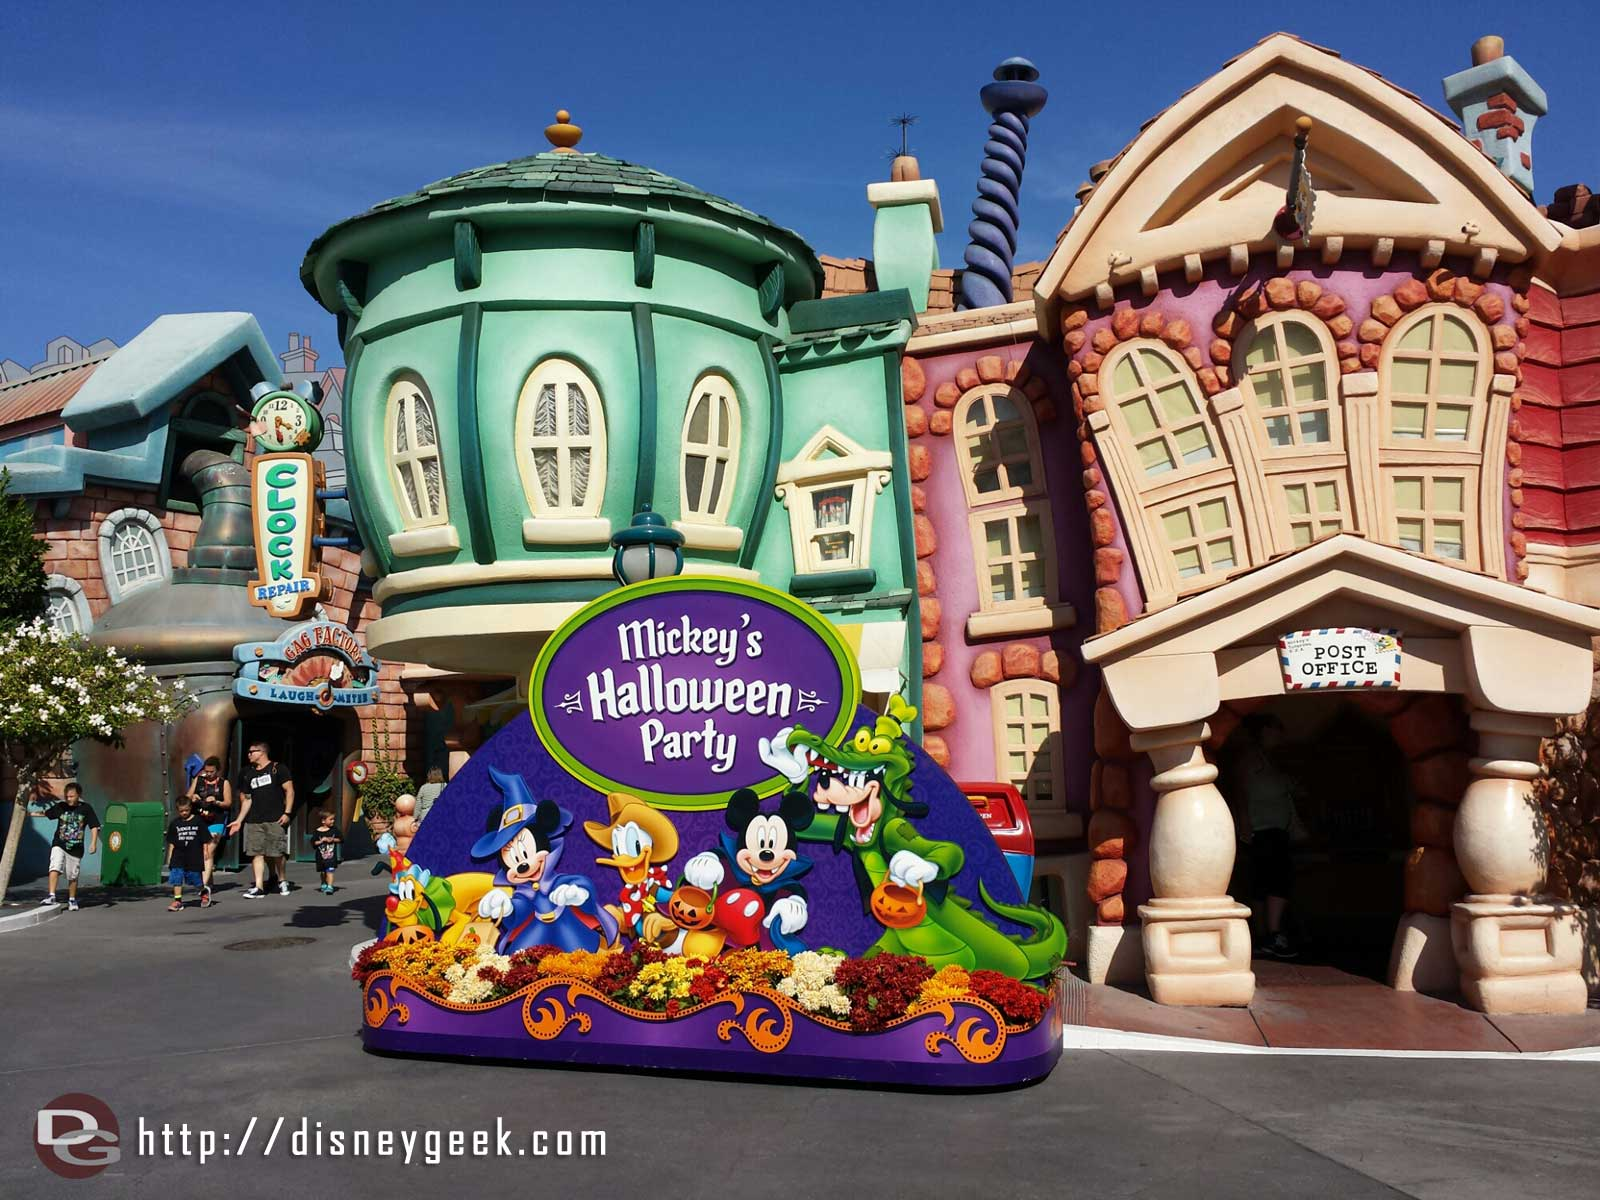 A random Halloween Party photo back drop out in Toontown already.